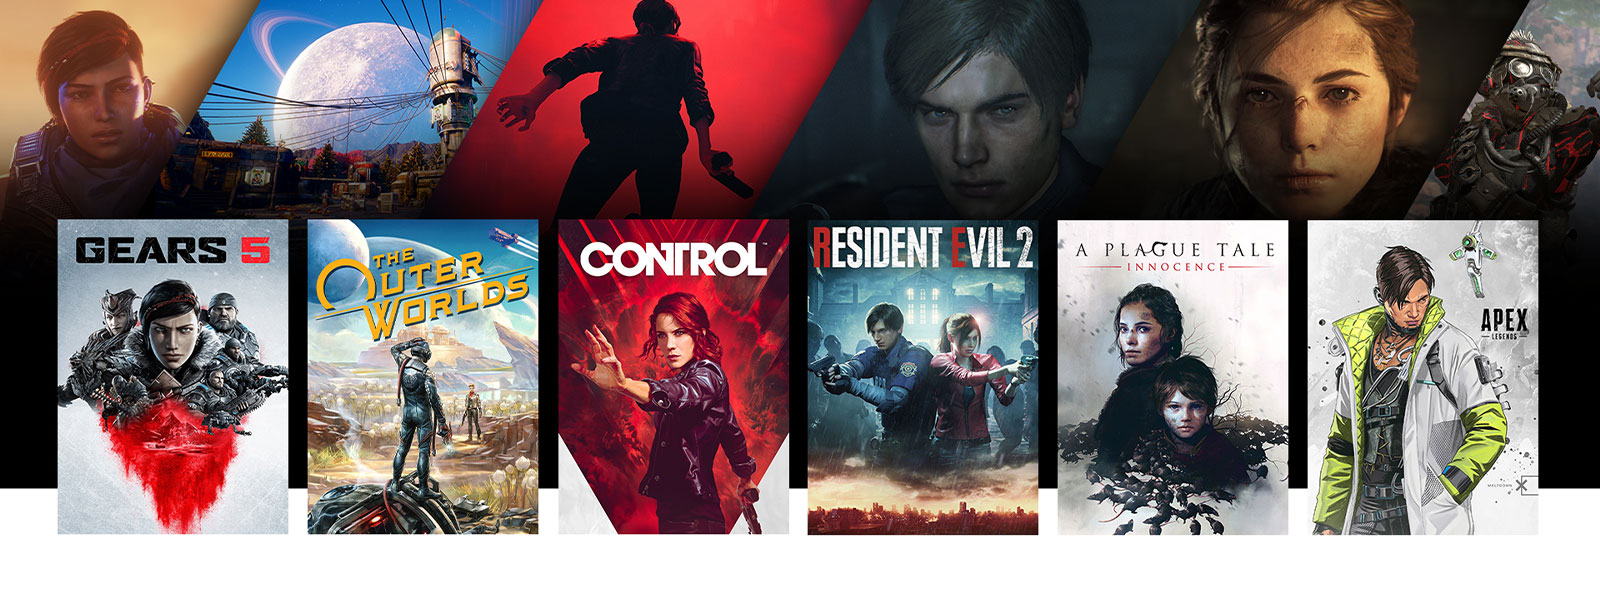 A collage of scenes and box art from Xbox One games on sale. Gears 5, The Outer Worlds, Control, Resident Evil 2, A Plague Tale: Innocence, Apex Legends.